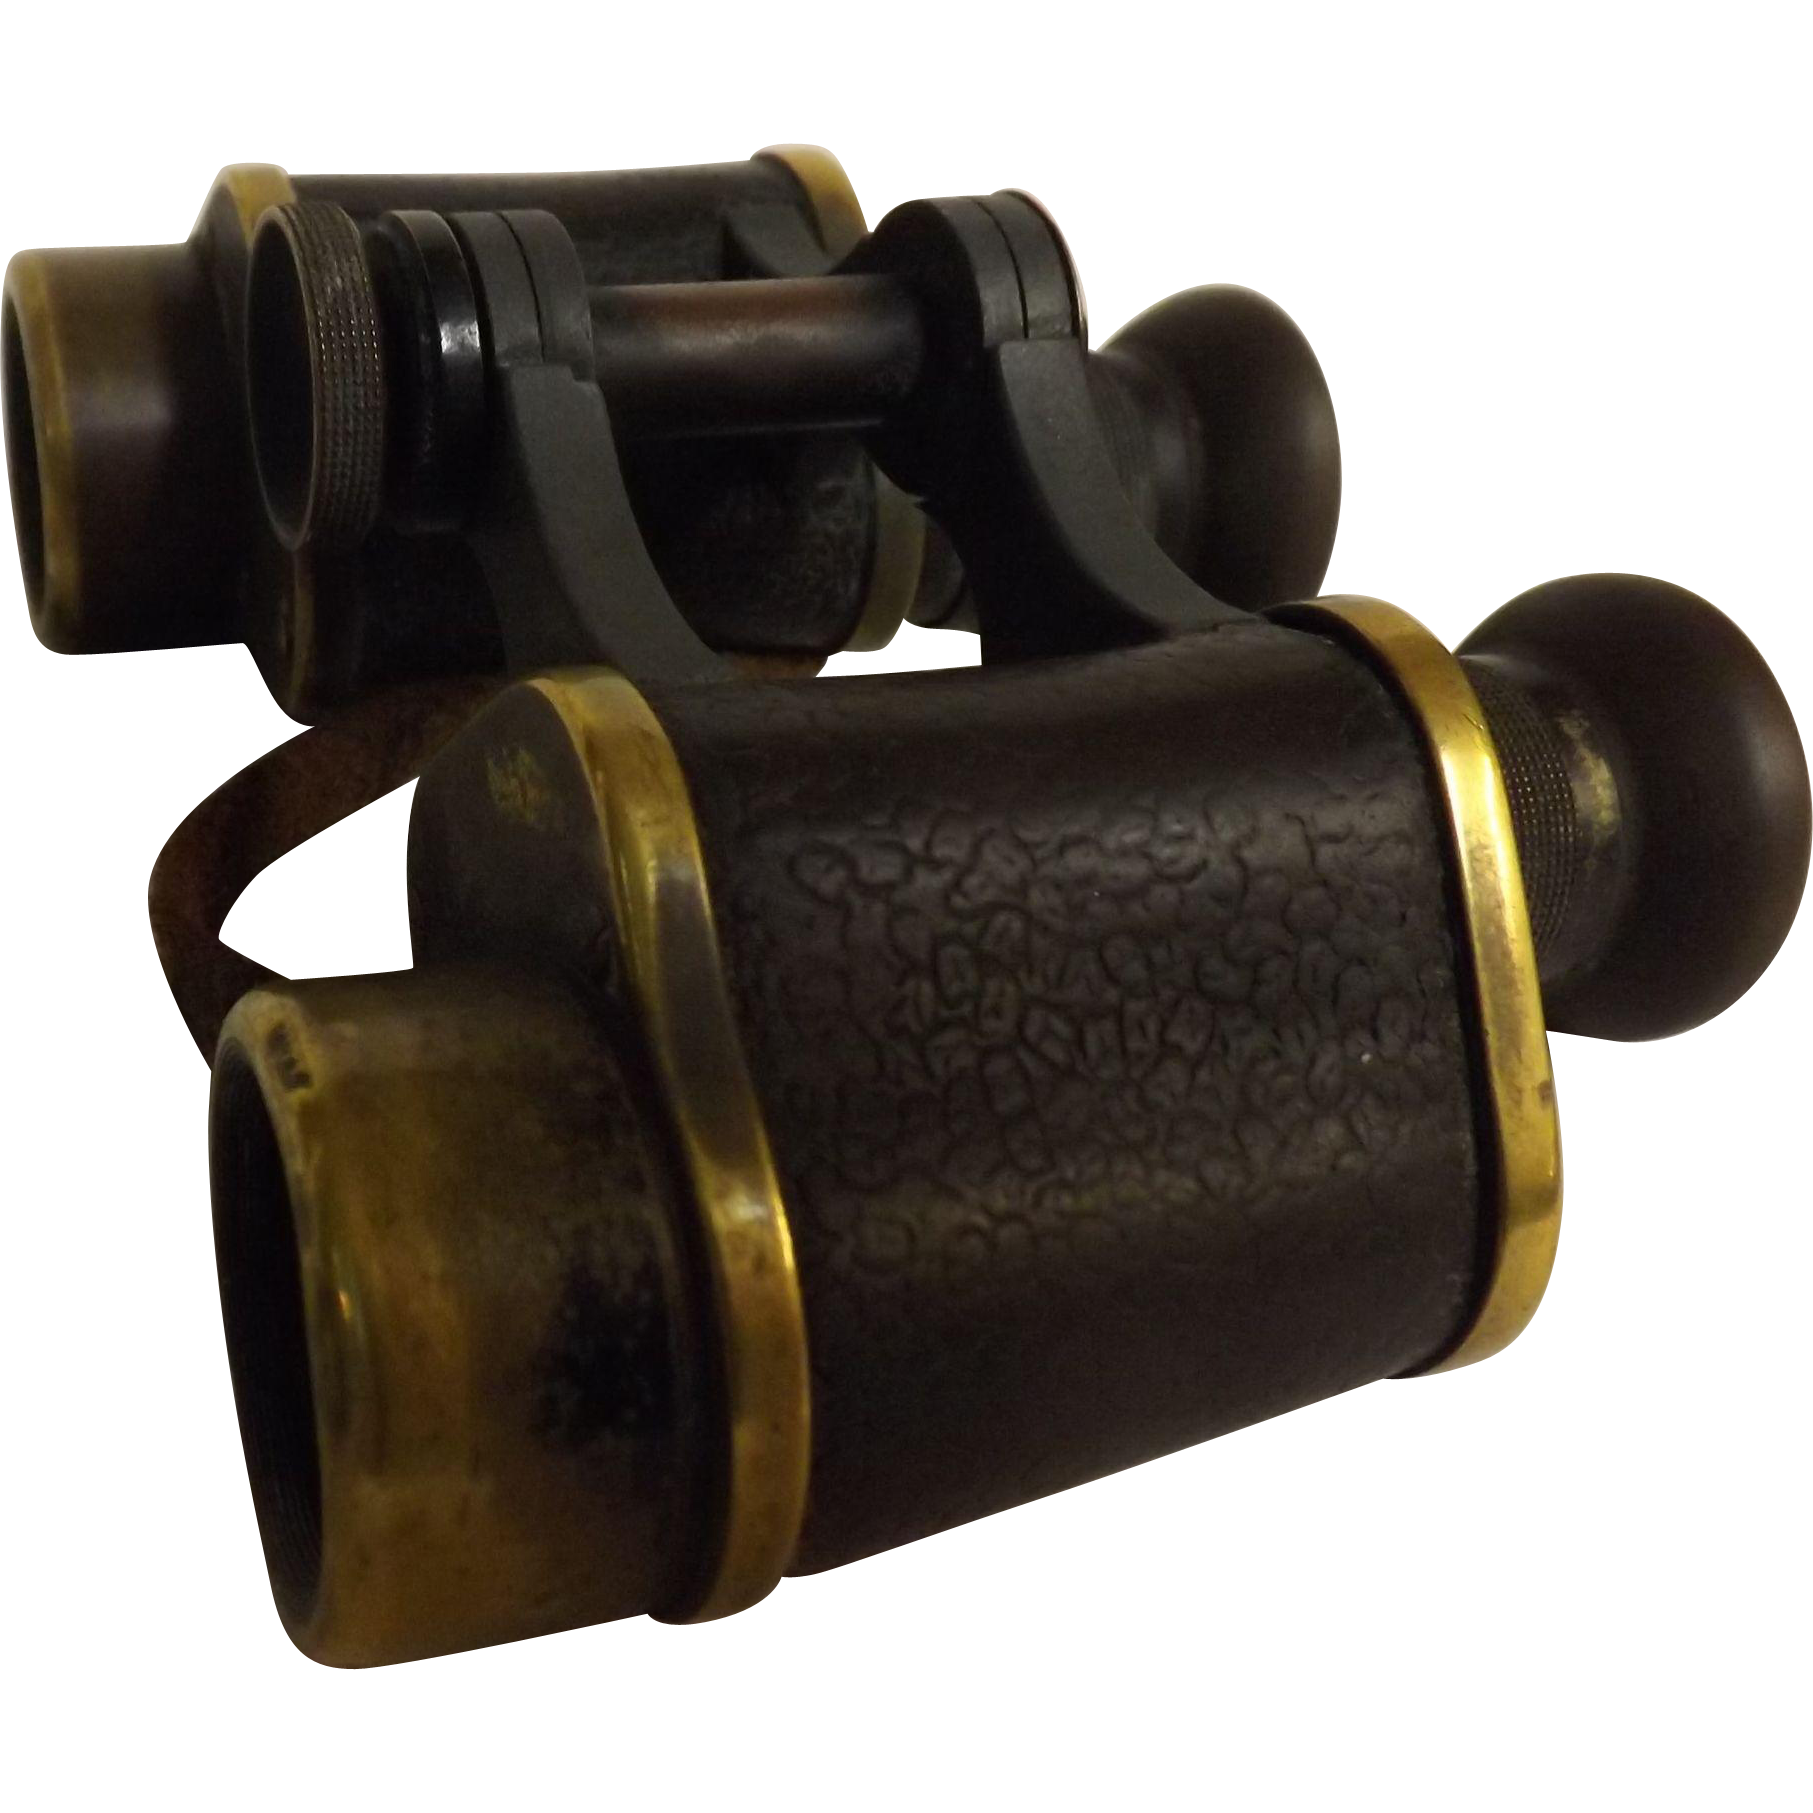 Victorian Stereo Prism Binoculars By Ross of London - Circa 1898-1900